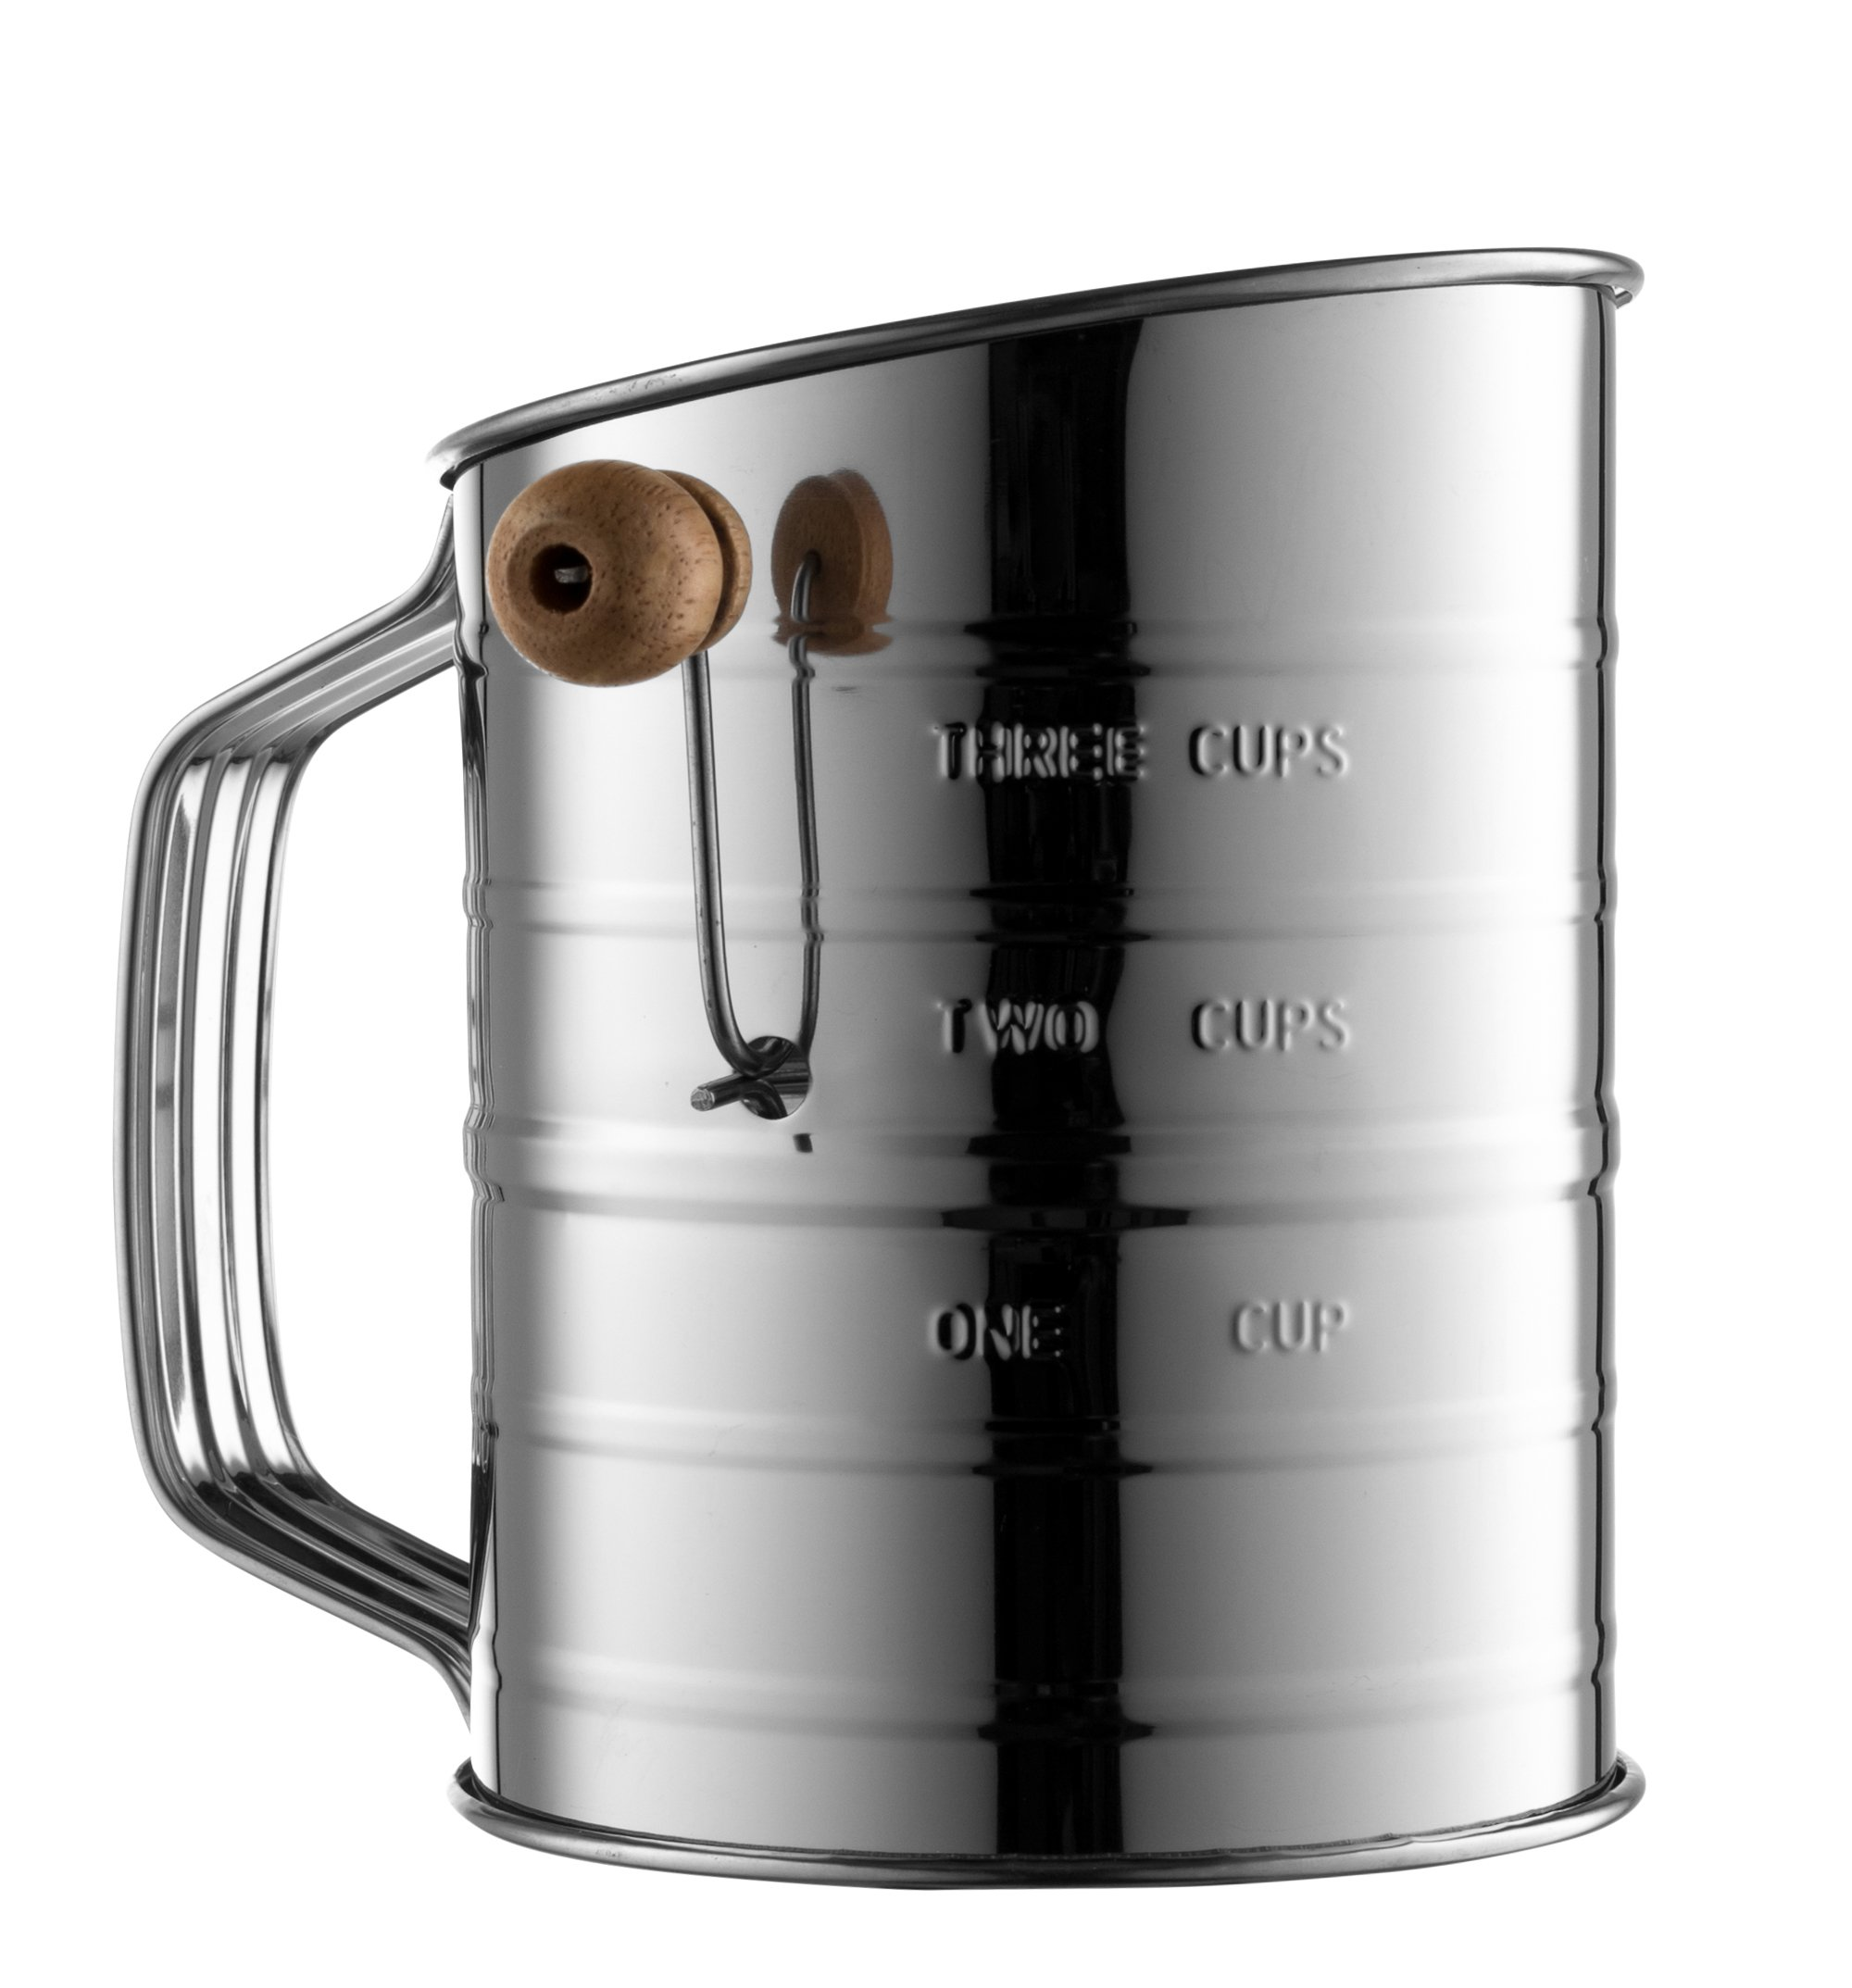 Bellemain Stainless Steel 3 Cup Flour Sifter by Epica